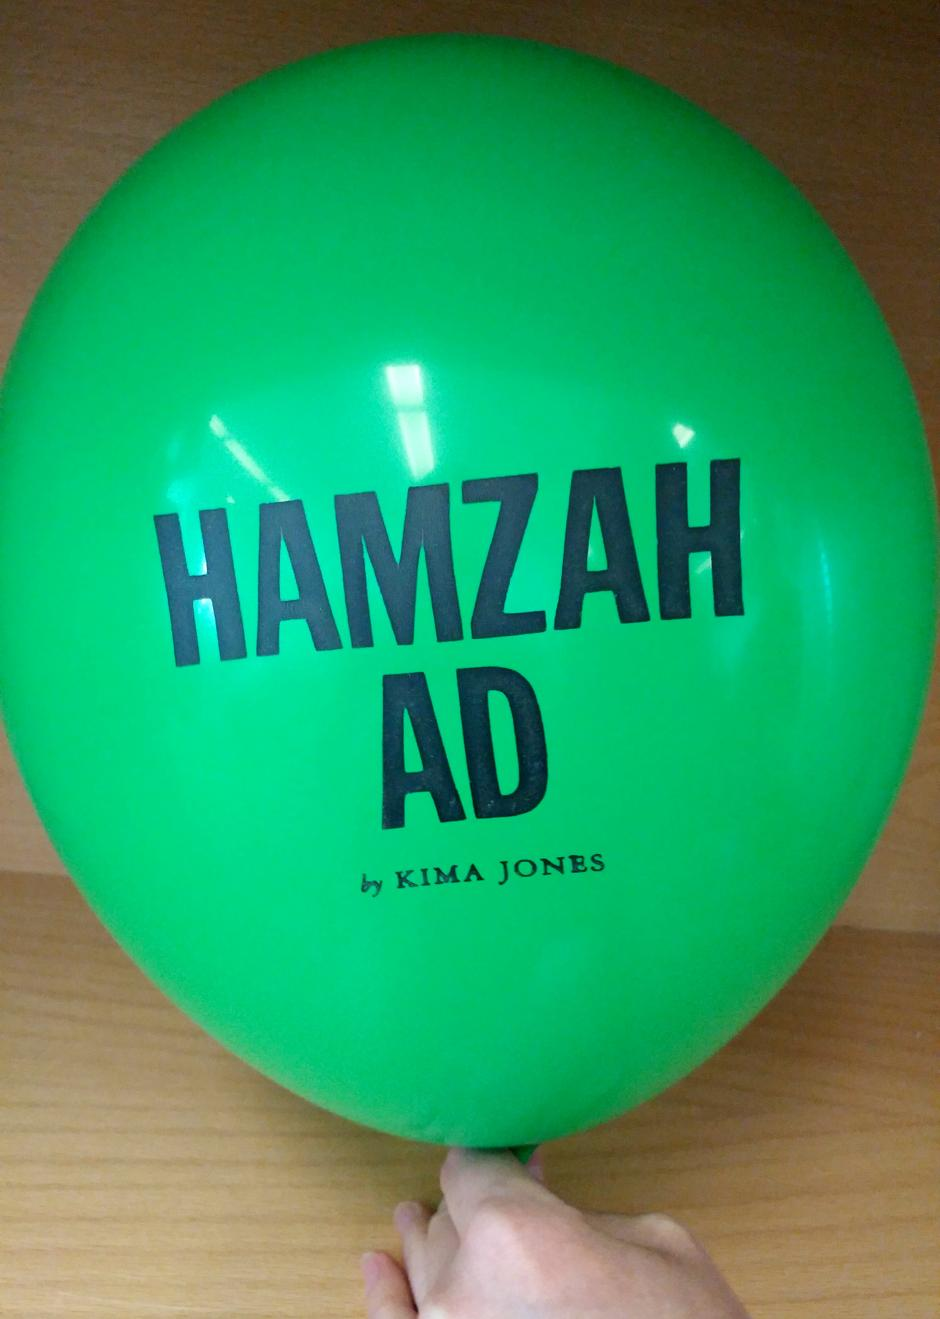 "A green balloon inflated with the text, ""Hamzah Ad by Kima Jones"" printed on it."